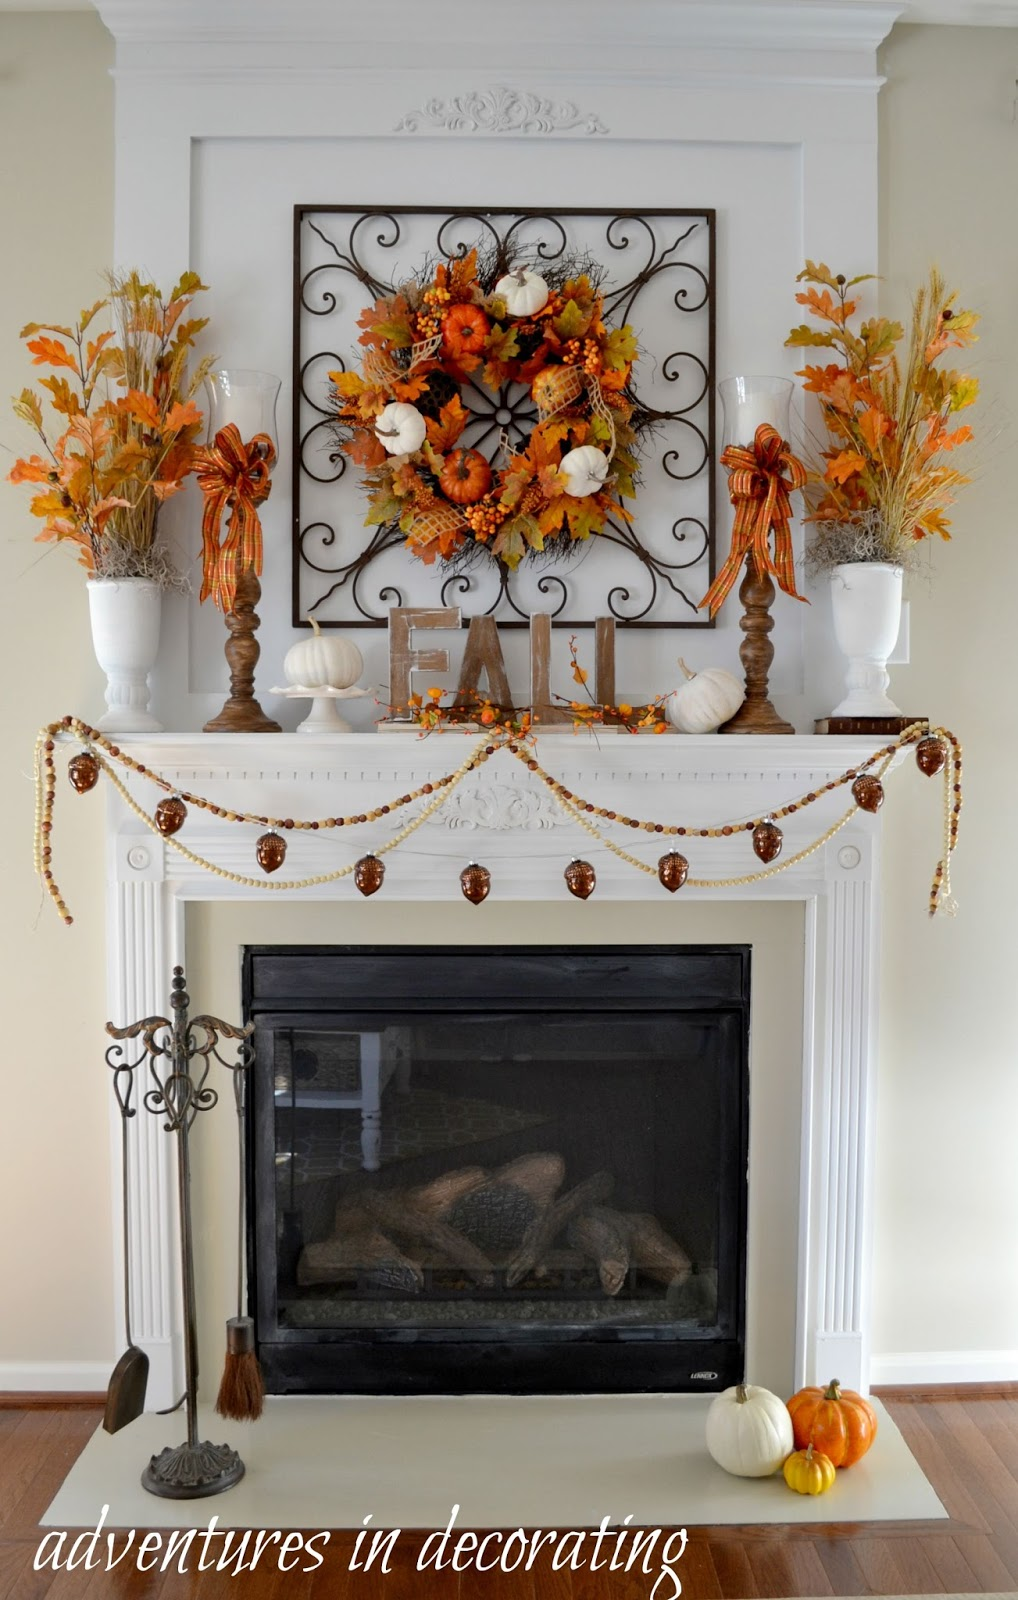 Adventures In Decorating Our Fall Kitchen: Adventures In Decorating: Kicking Off Fall With Our 2015